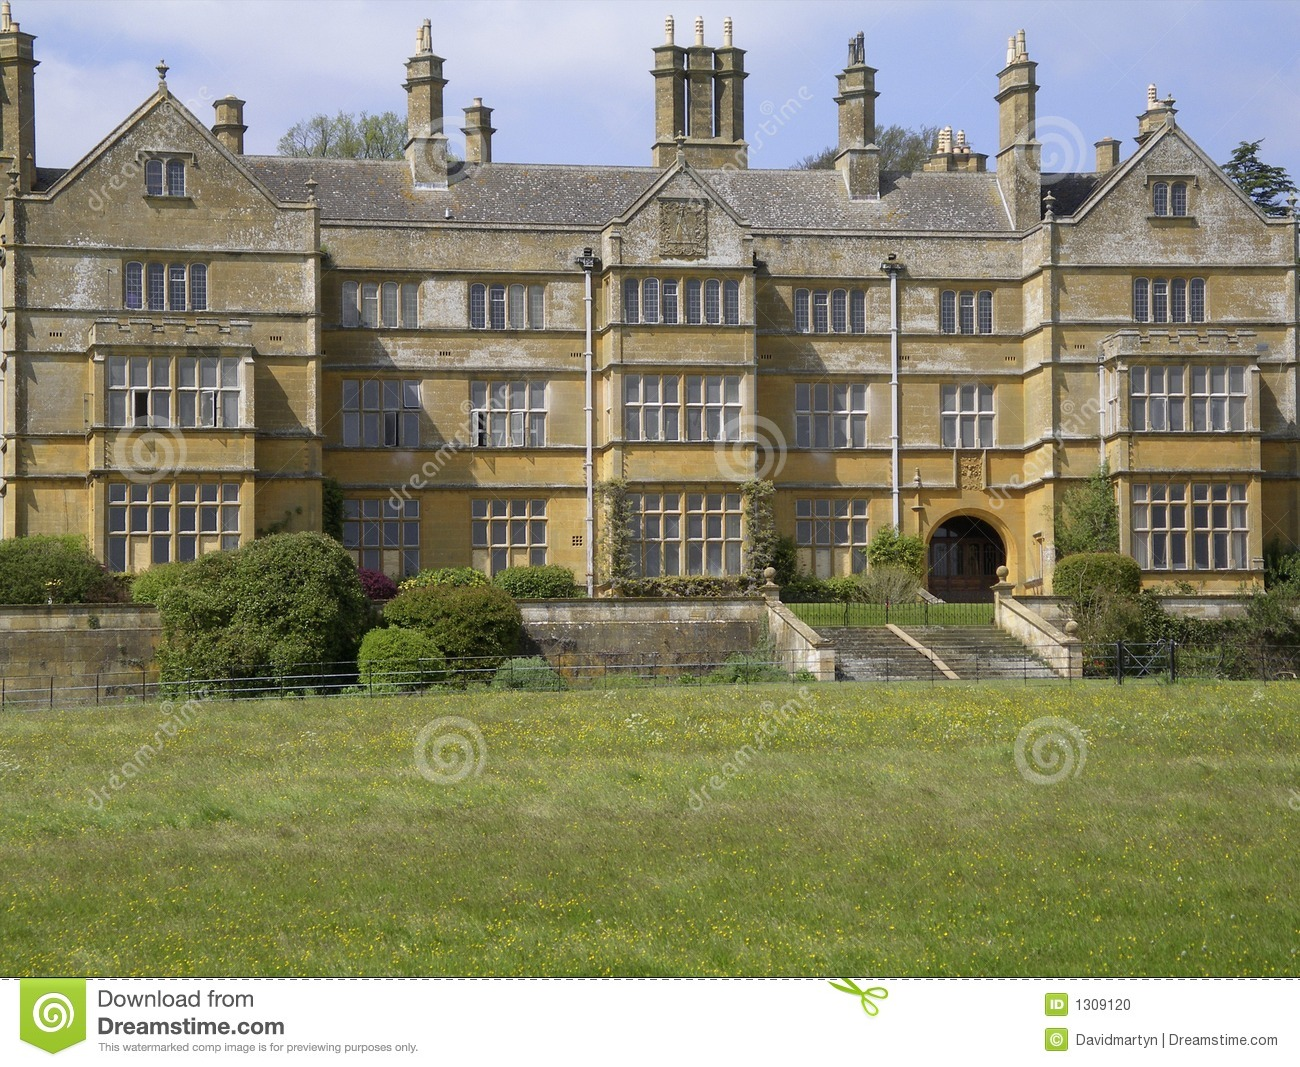 Batsford hall stately home england stock photo image for Home img